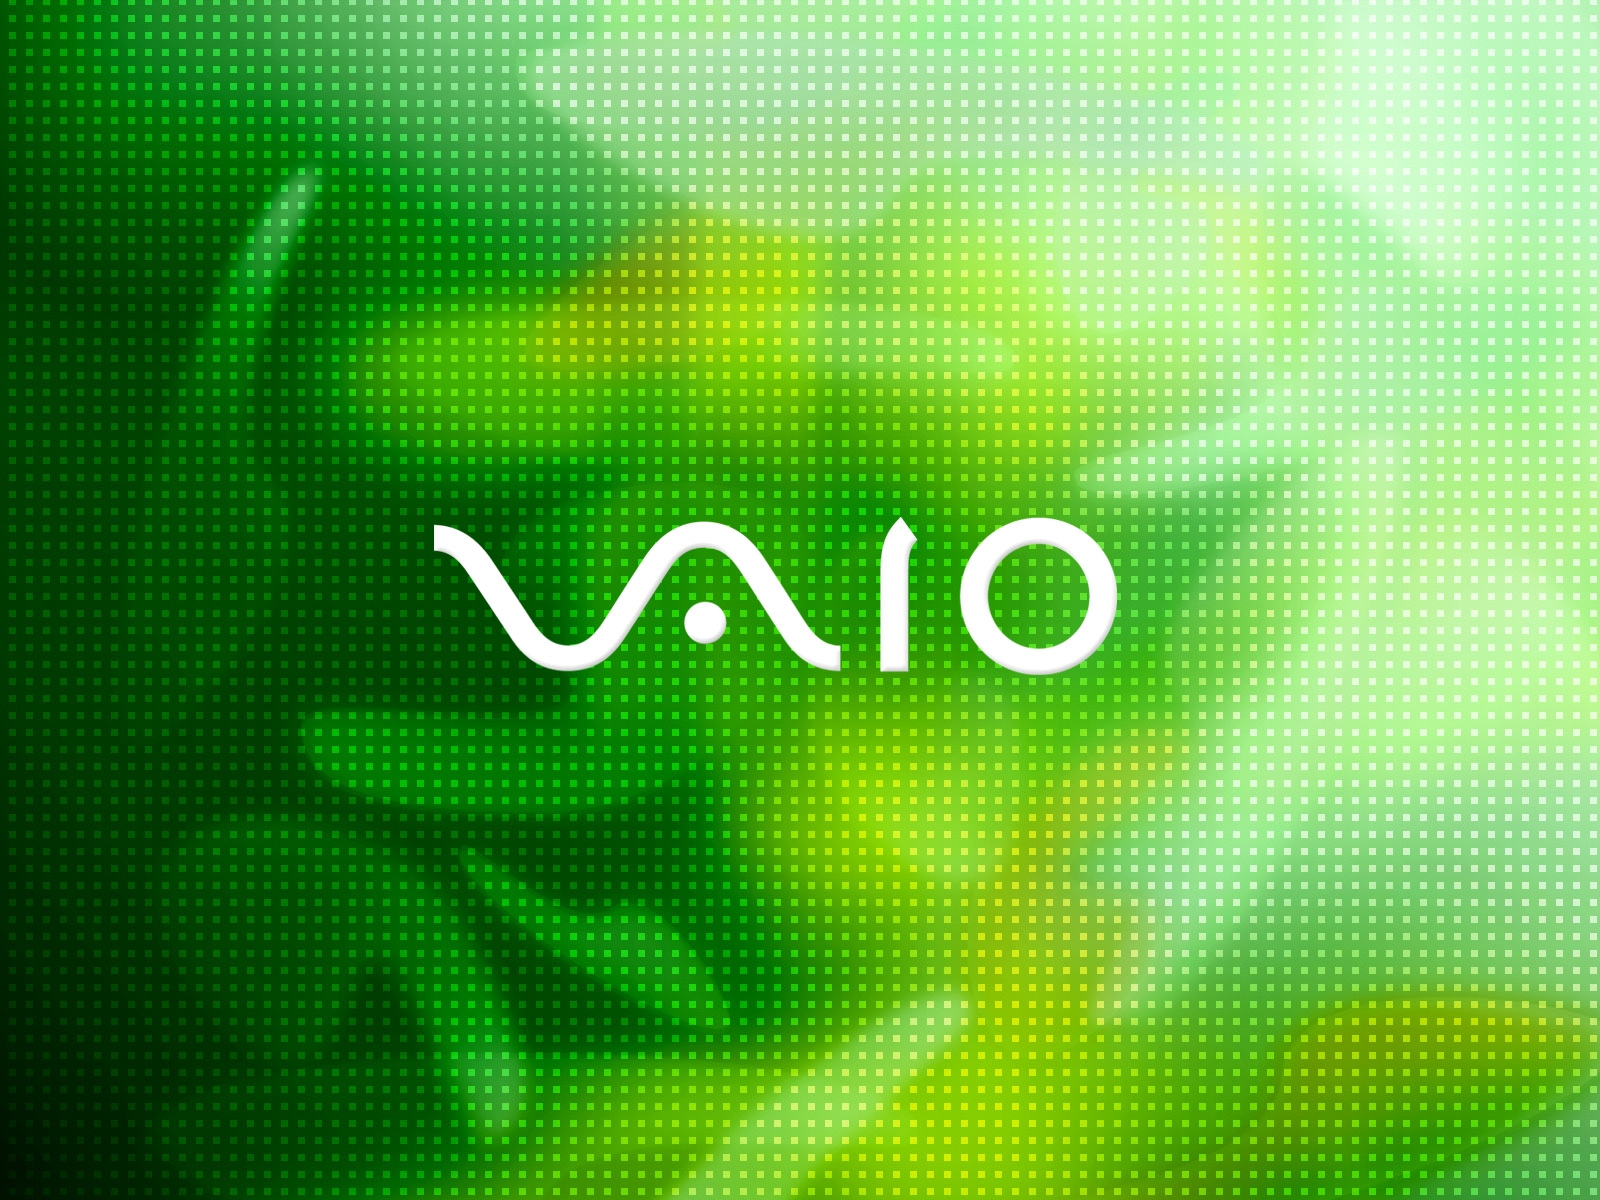 http://4.bp.blogspot.com/-ruvzOBWFZnI/Tilv8YXwsrI/AAAAAAAAAcE/CZJY9avHY0Q/s1600/sony-vaio-green-and-black-computer-wallpapers.jpg